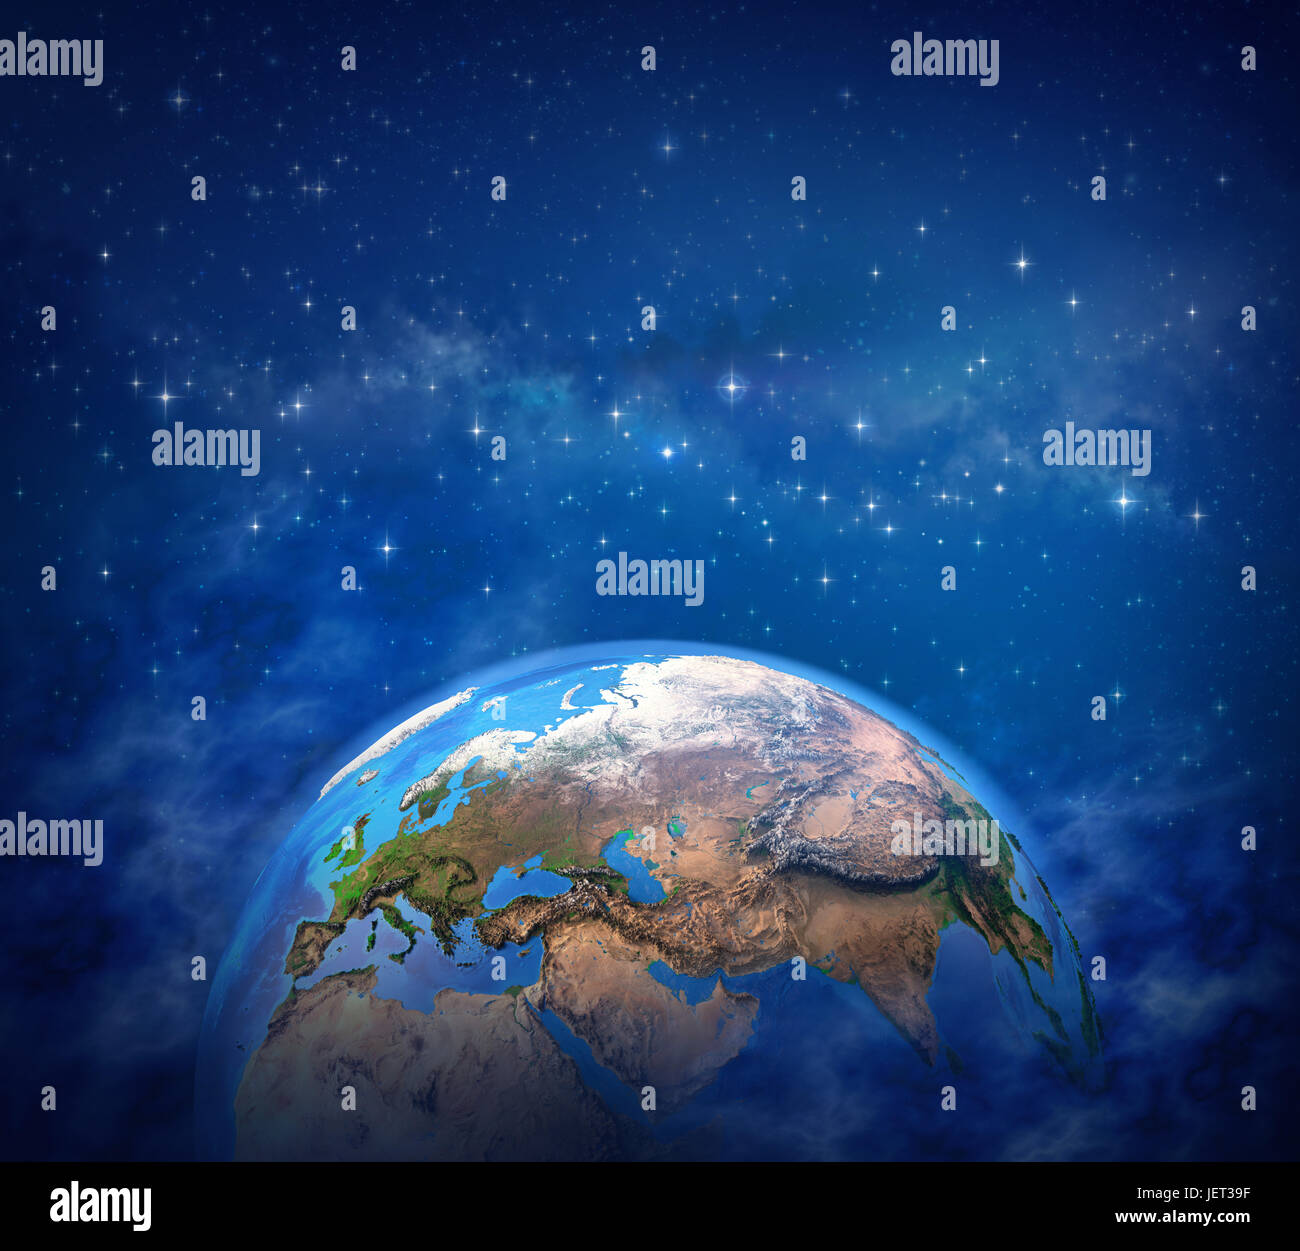 Planet Earth in deep space, star cluster and milky way far behind - Elements of this image furnished by NASA - Stock Image